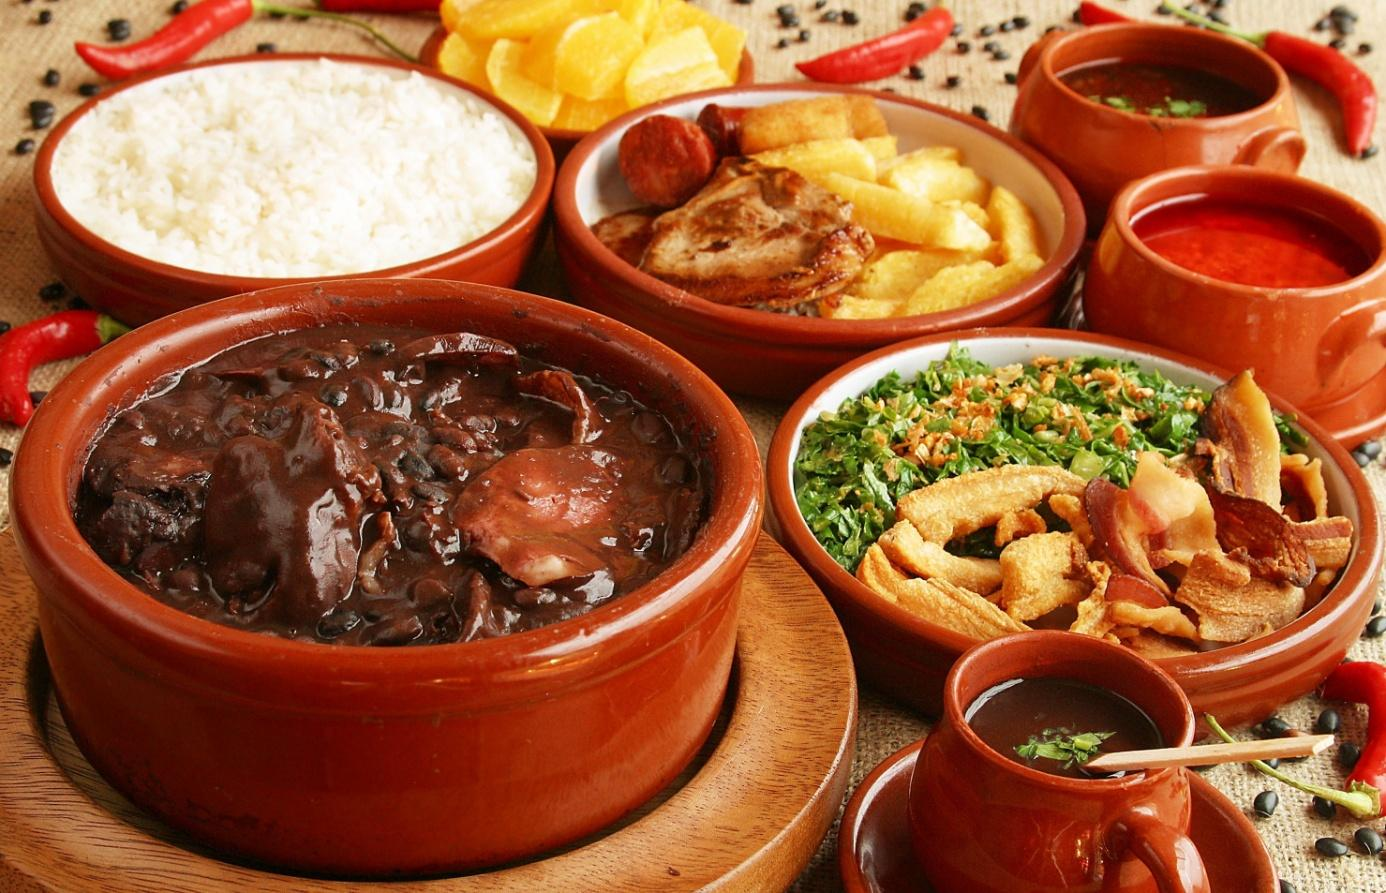 http://myrestaurant.pt/sites/default/files/imagens/especialidades/feijoada_0.jpeg